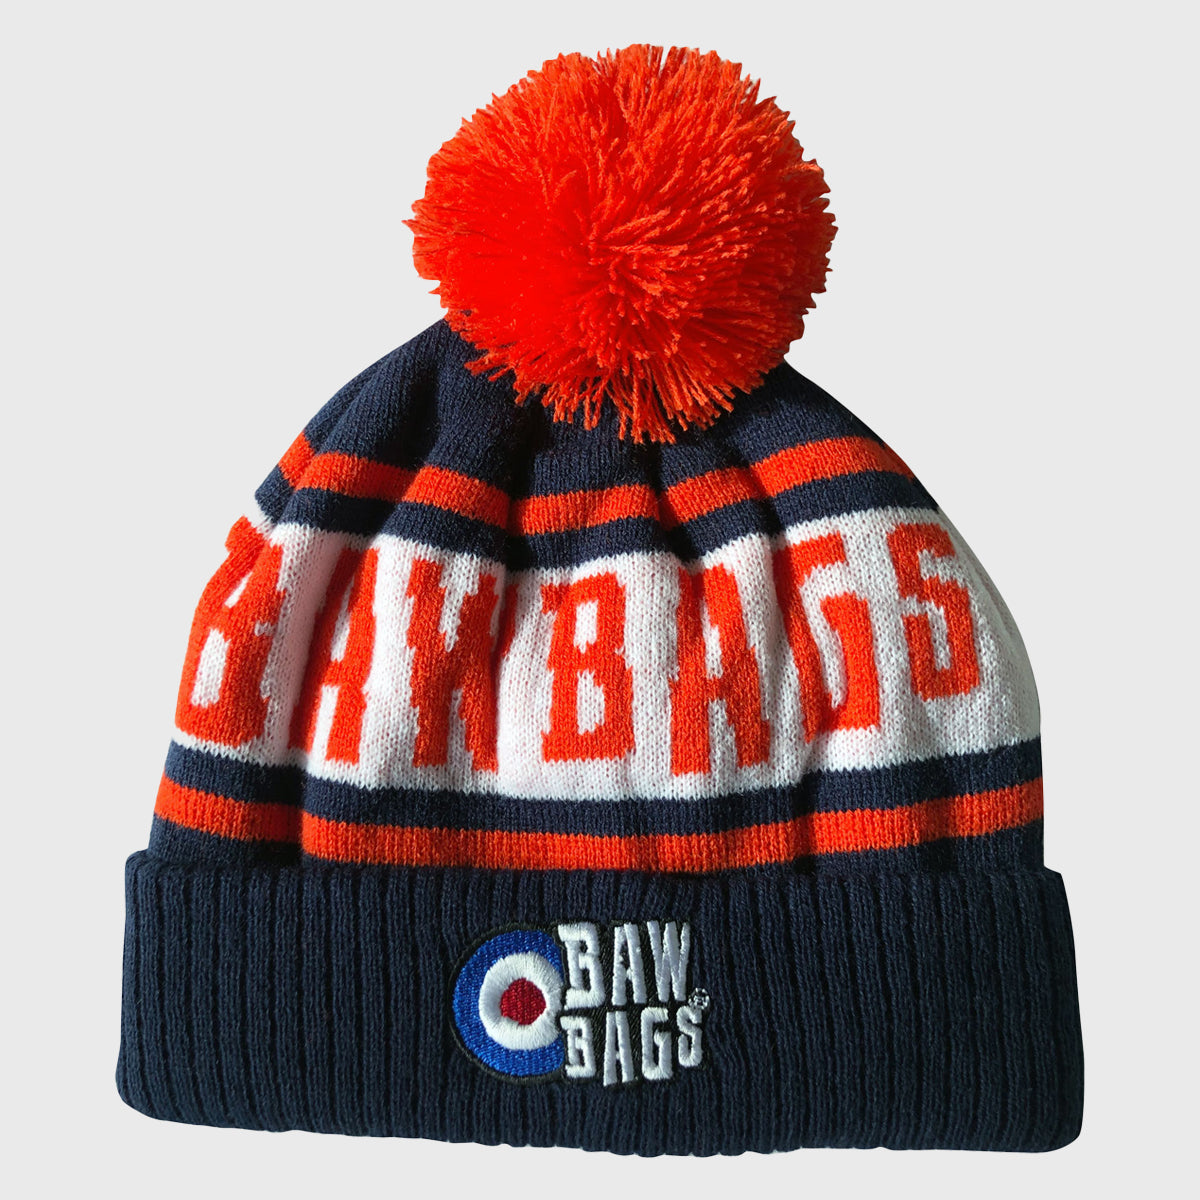 Premium Bobble Beanie Hat Orange